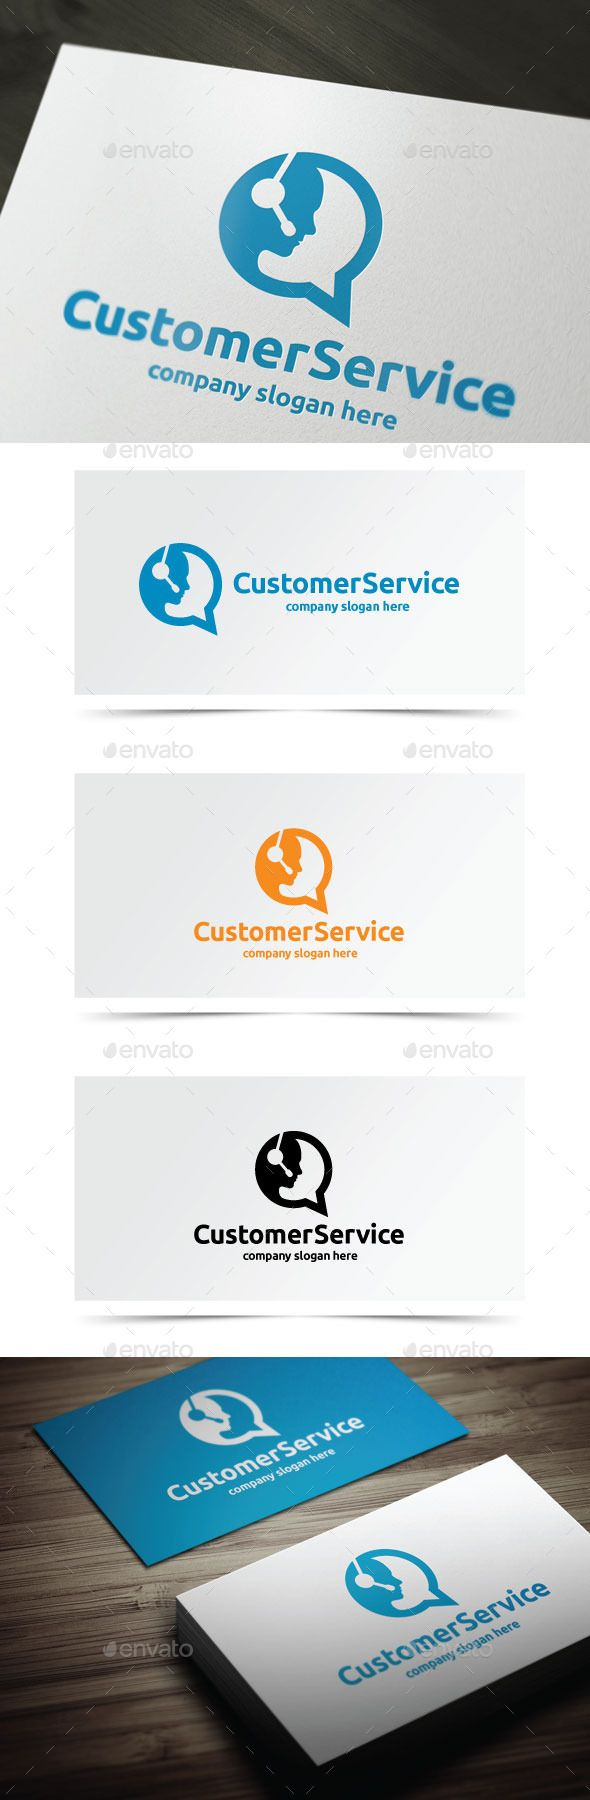 Customer Service Logo Template PSD, Vector EPS, AI. Download here: http://graphicriver.net/item/customer-service/10741273?ref=ksioks